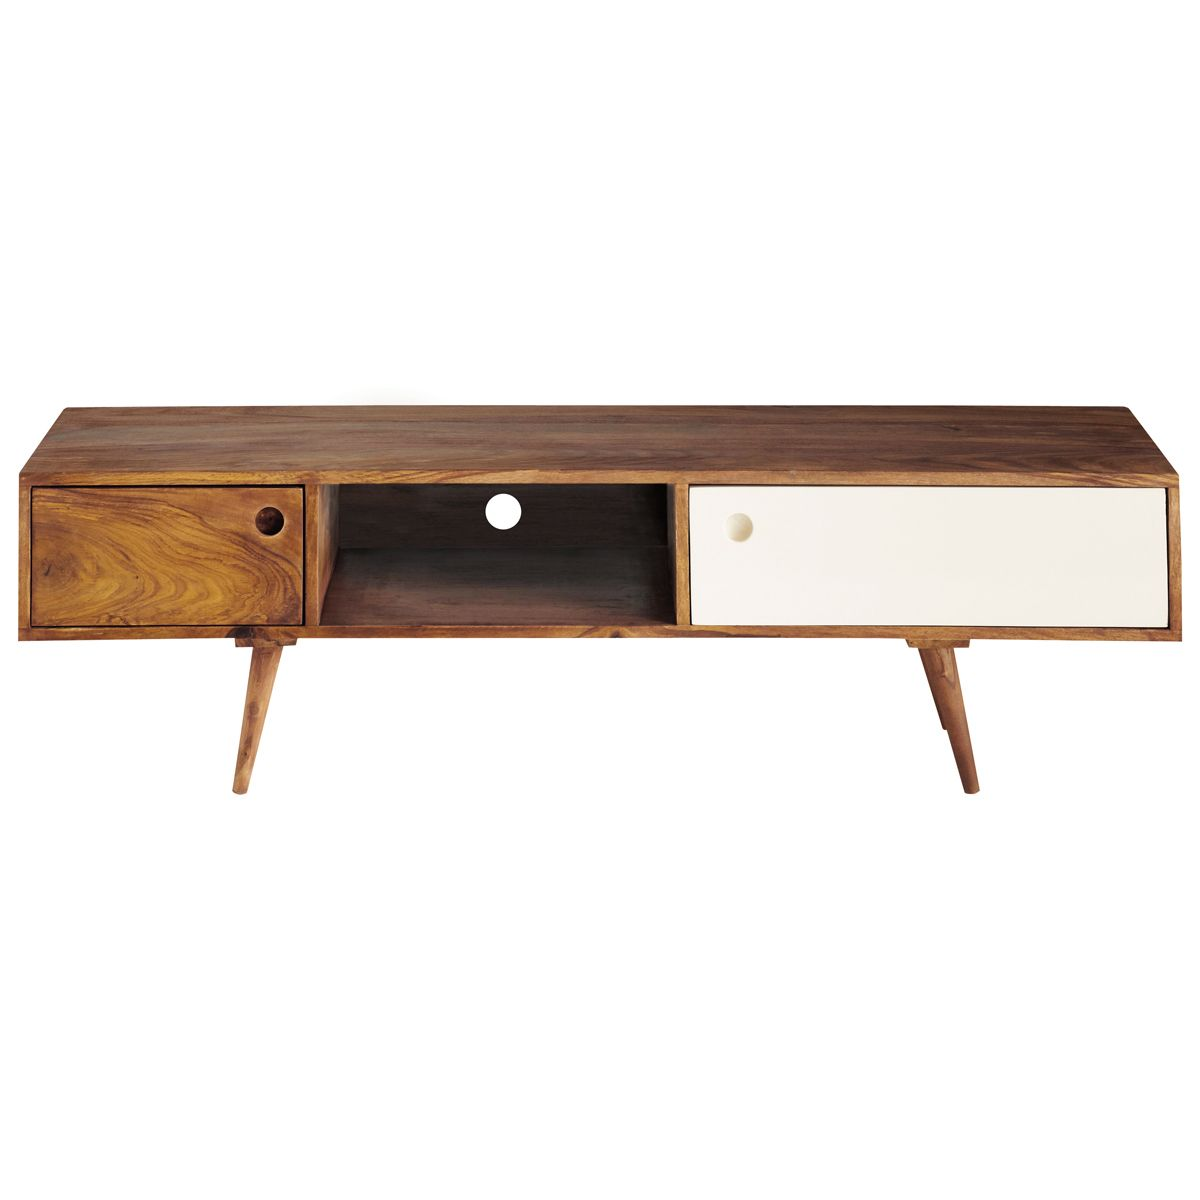 Meuble Tv Retro - Sheesham Wood Vintage Tv Unit W 140cm Tvs Tv Units And Vintage[mjhdah]http://www.maisonsdumonde.com/img/meuble-tv-vintage-fifty-s-1000-3-37-129679_1.jpg